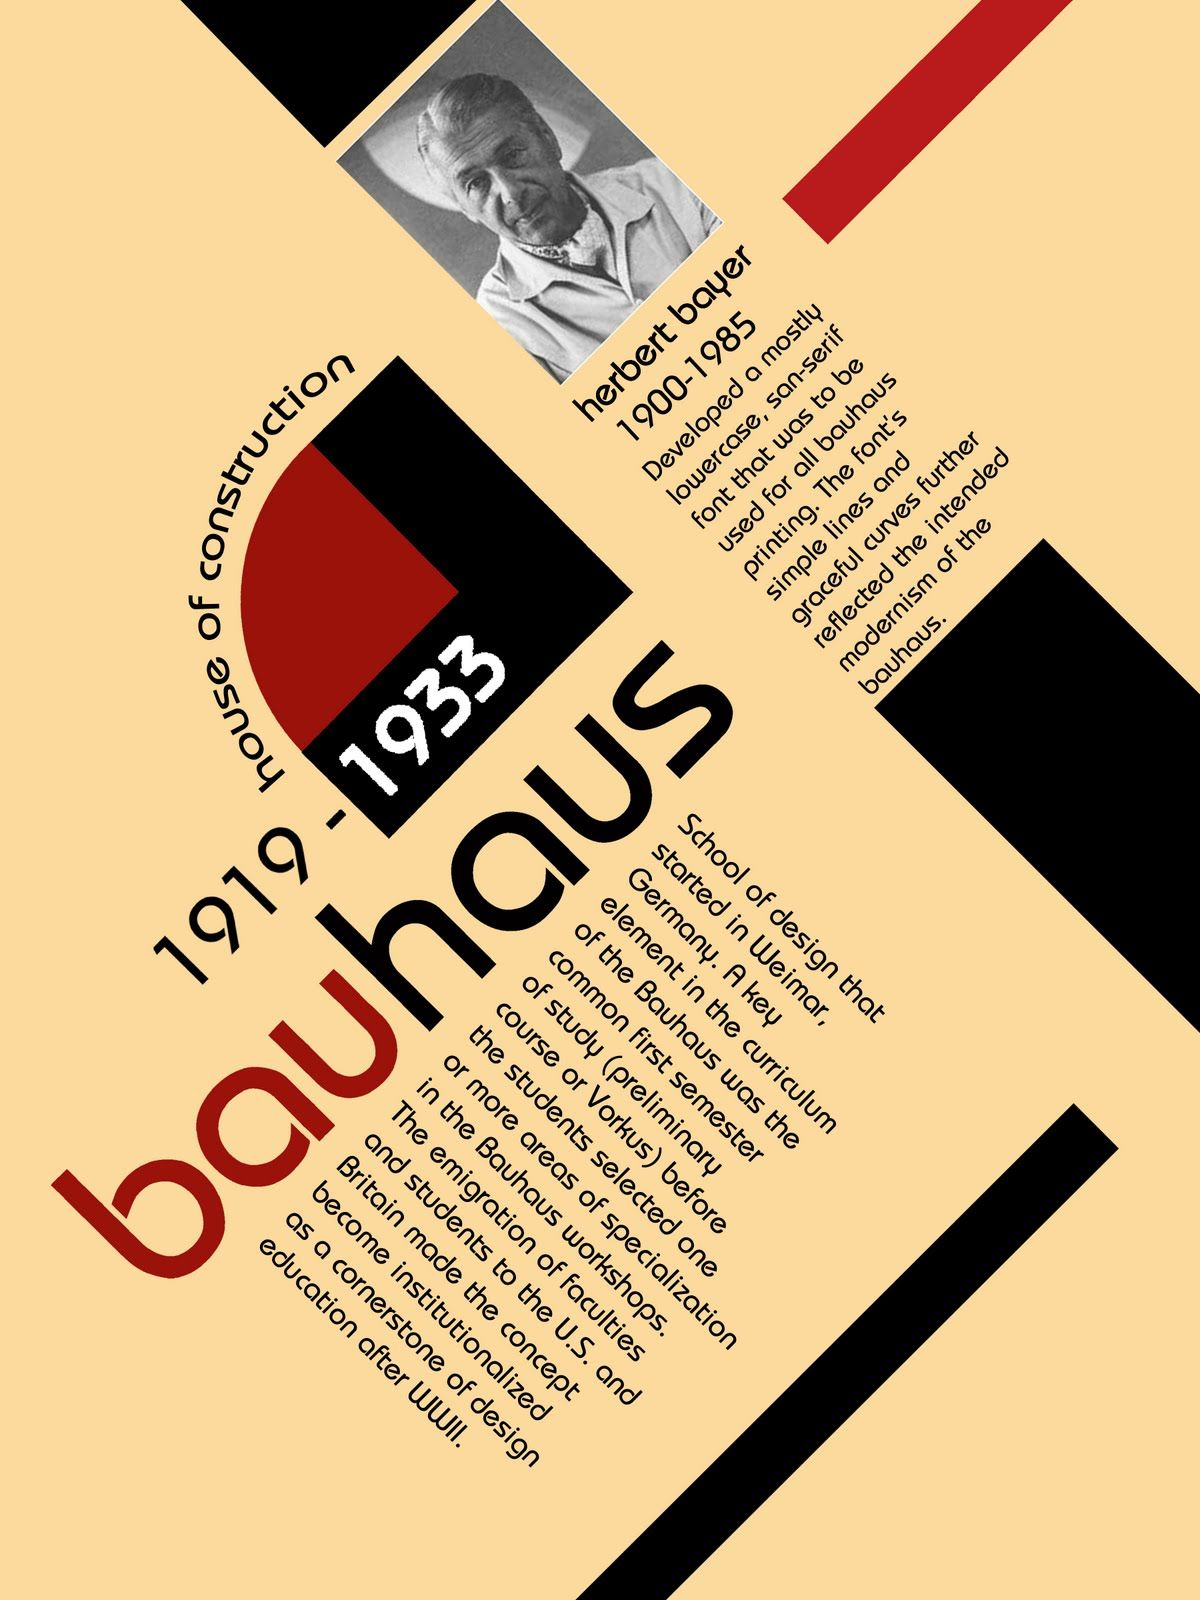 Bauhaus: How the Avant-Garde Movement Transformed Modern Art